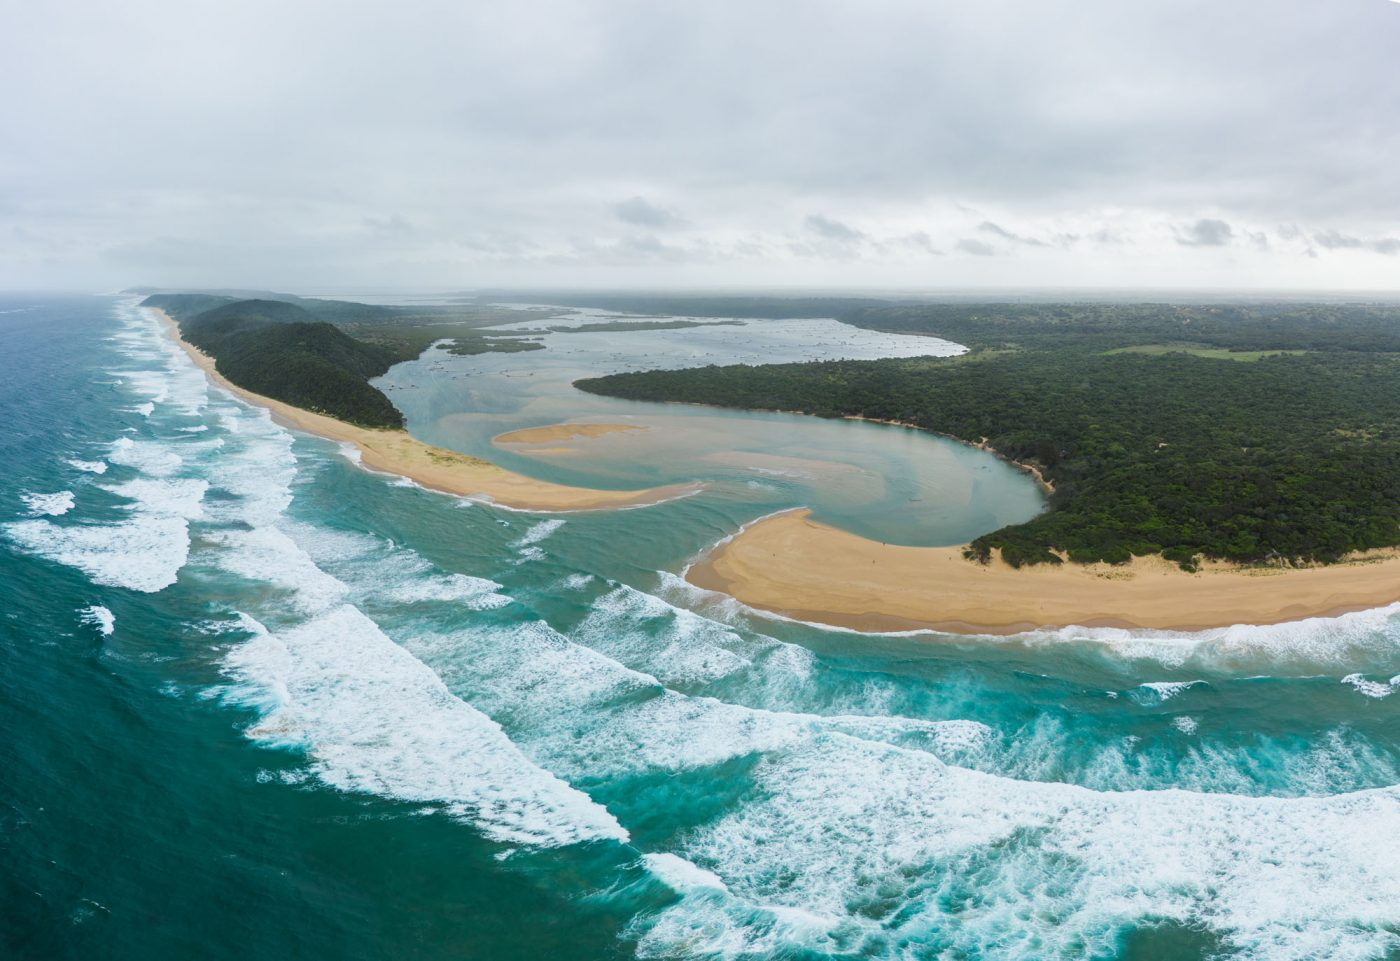 Kosi Bay Mouth, iSimangaliso National Park